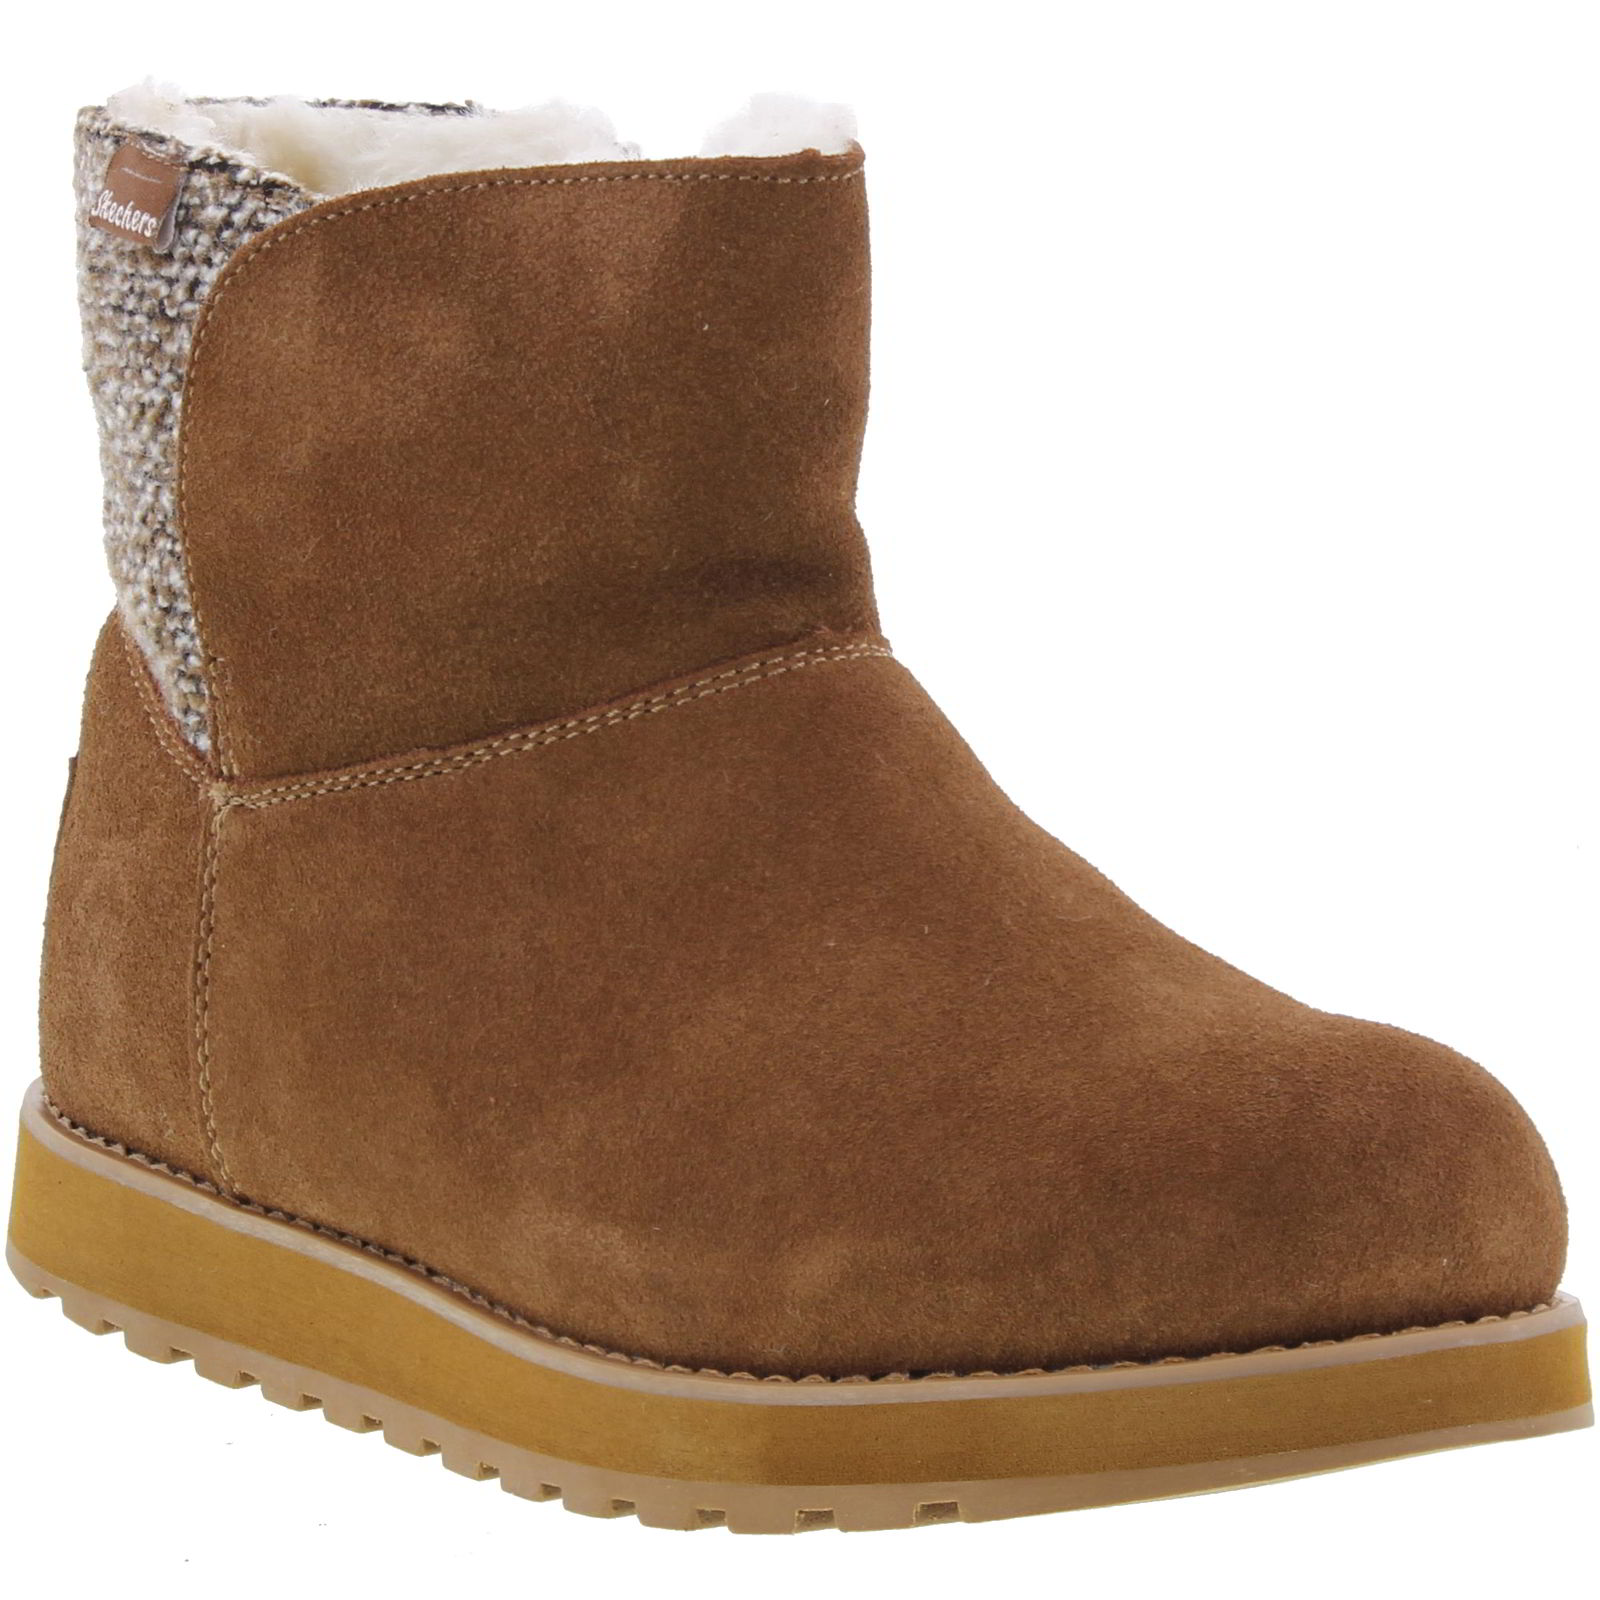 skechers keepsakes peekaboo womens warm suede leather